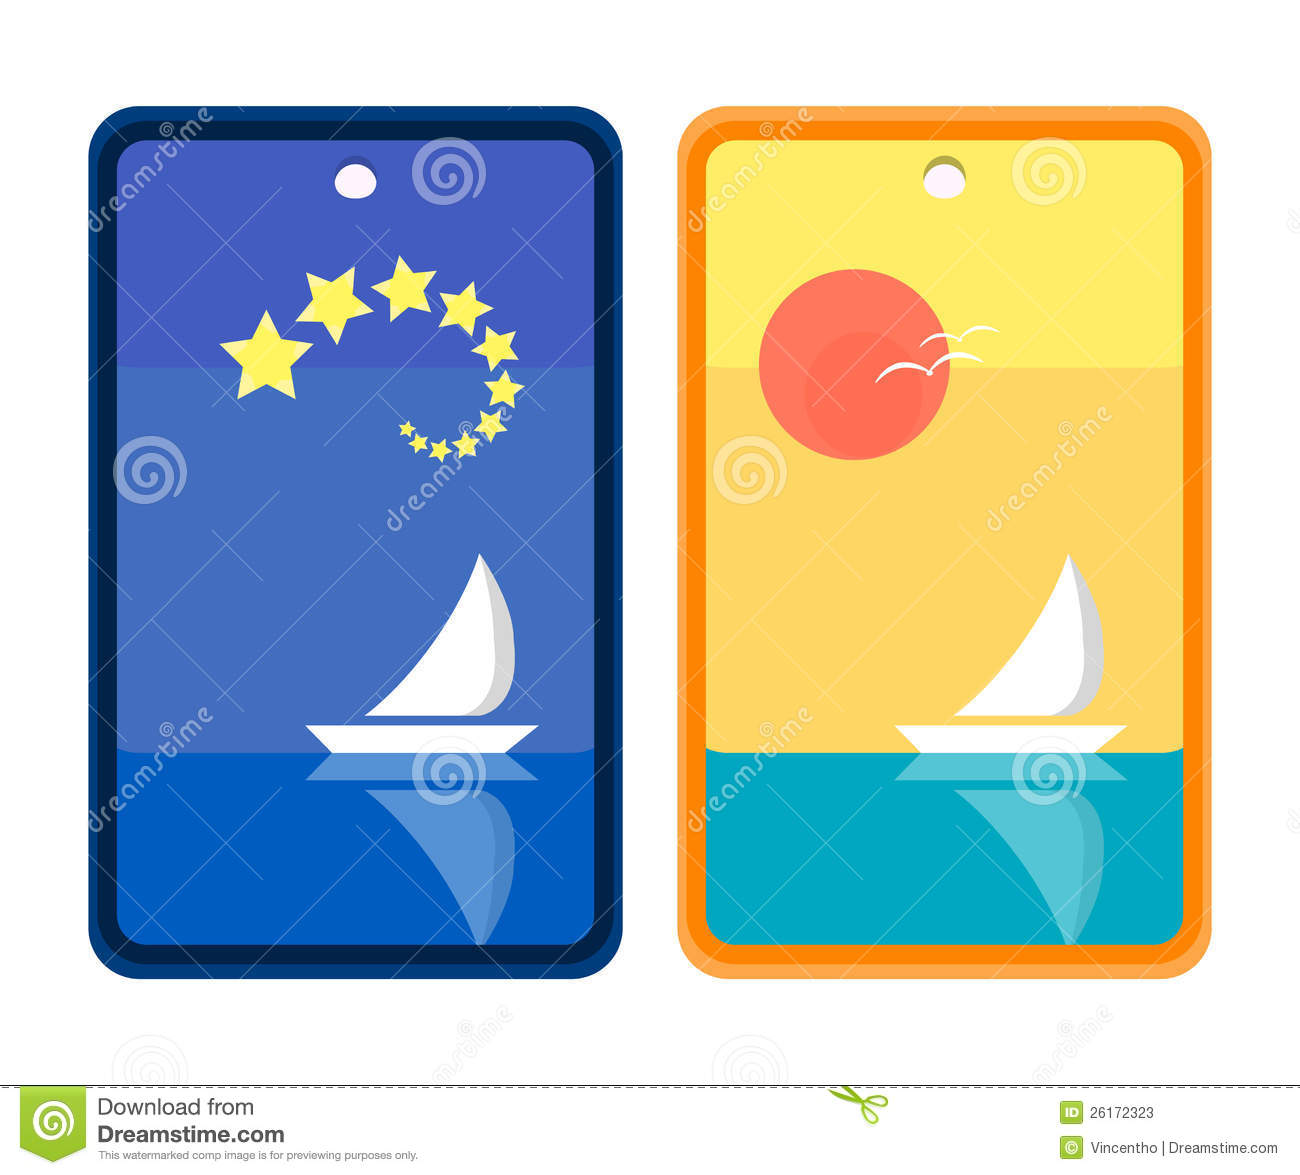 ... out to sea starry night and sunny day background bookmark design